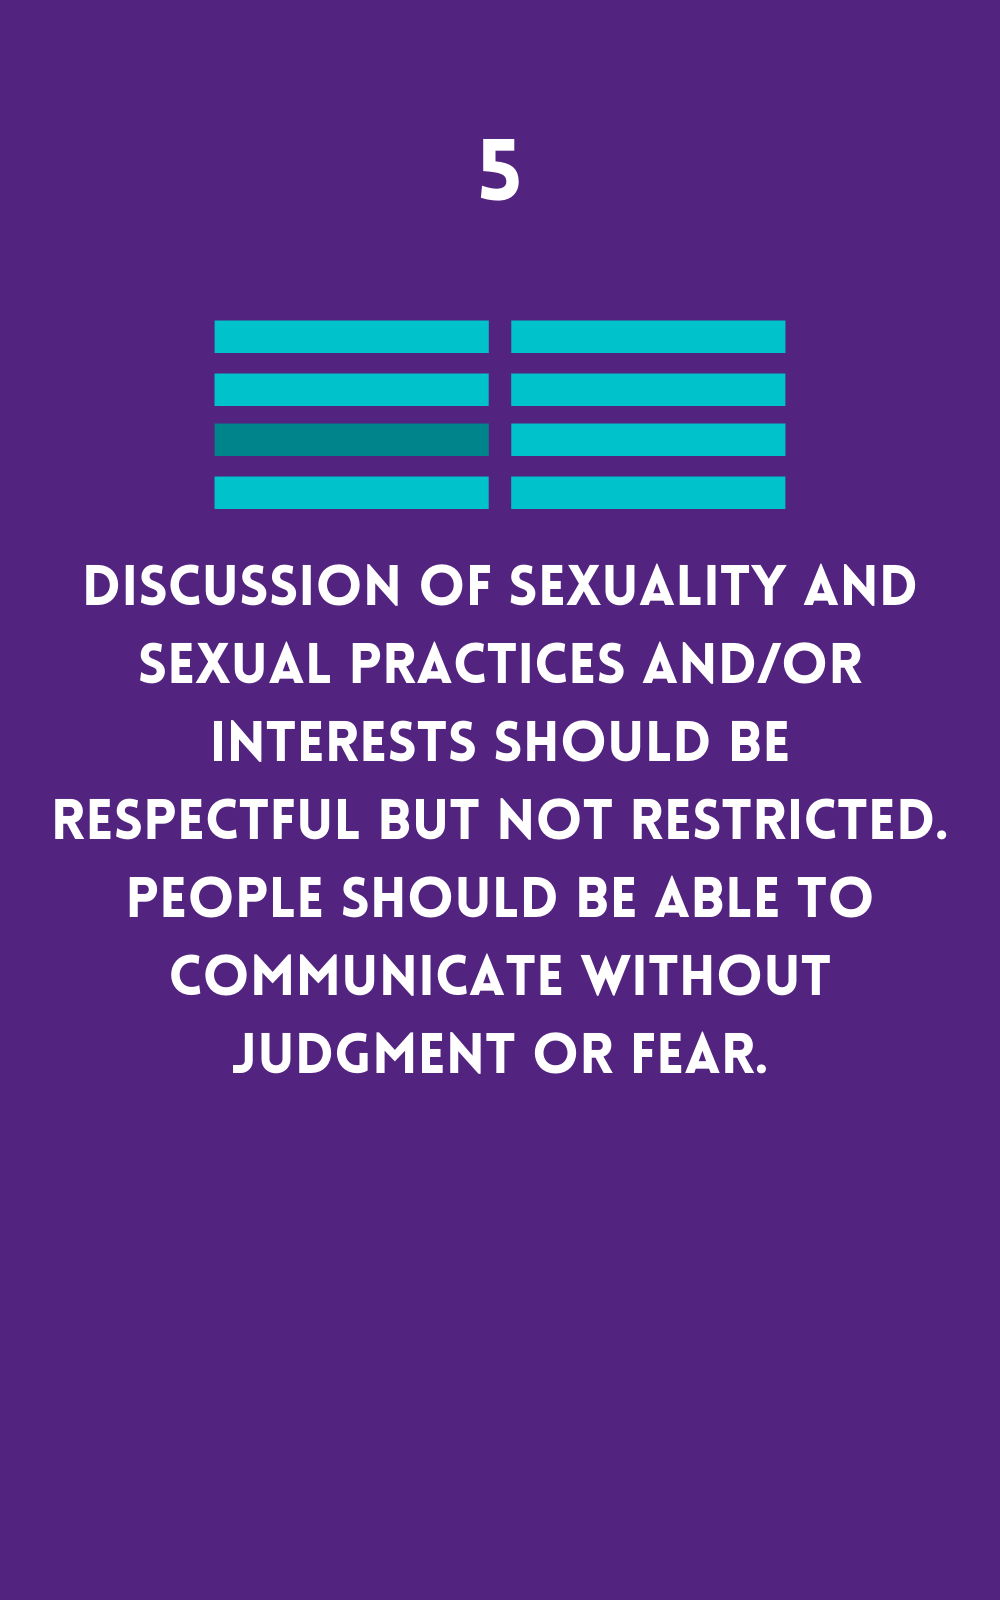 Discussions should be respectful and without judgment.